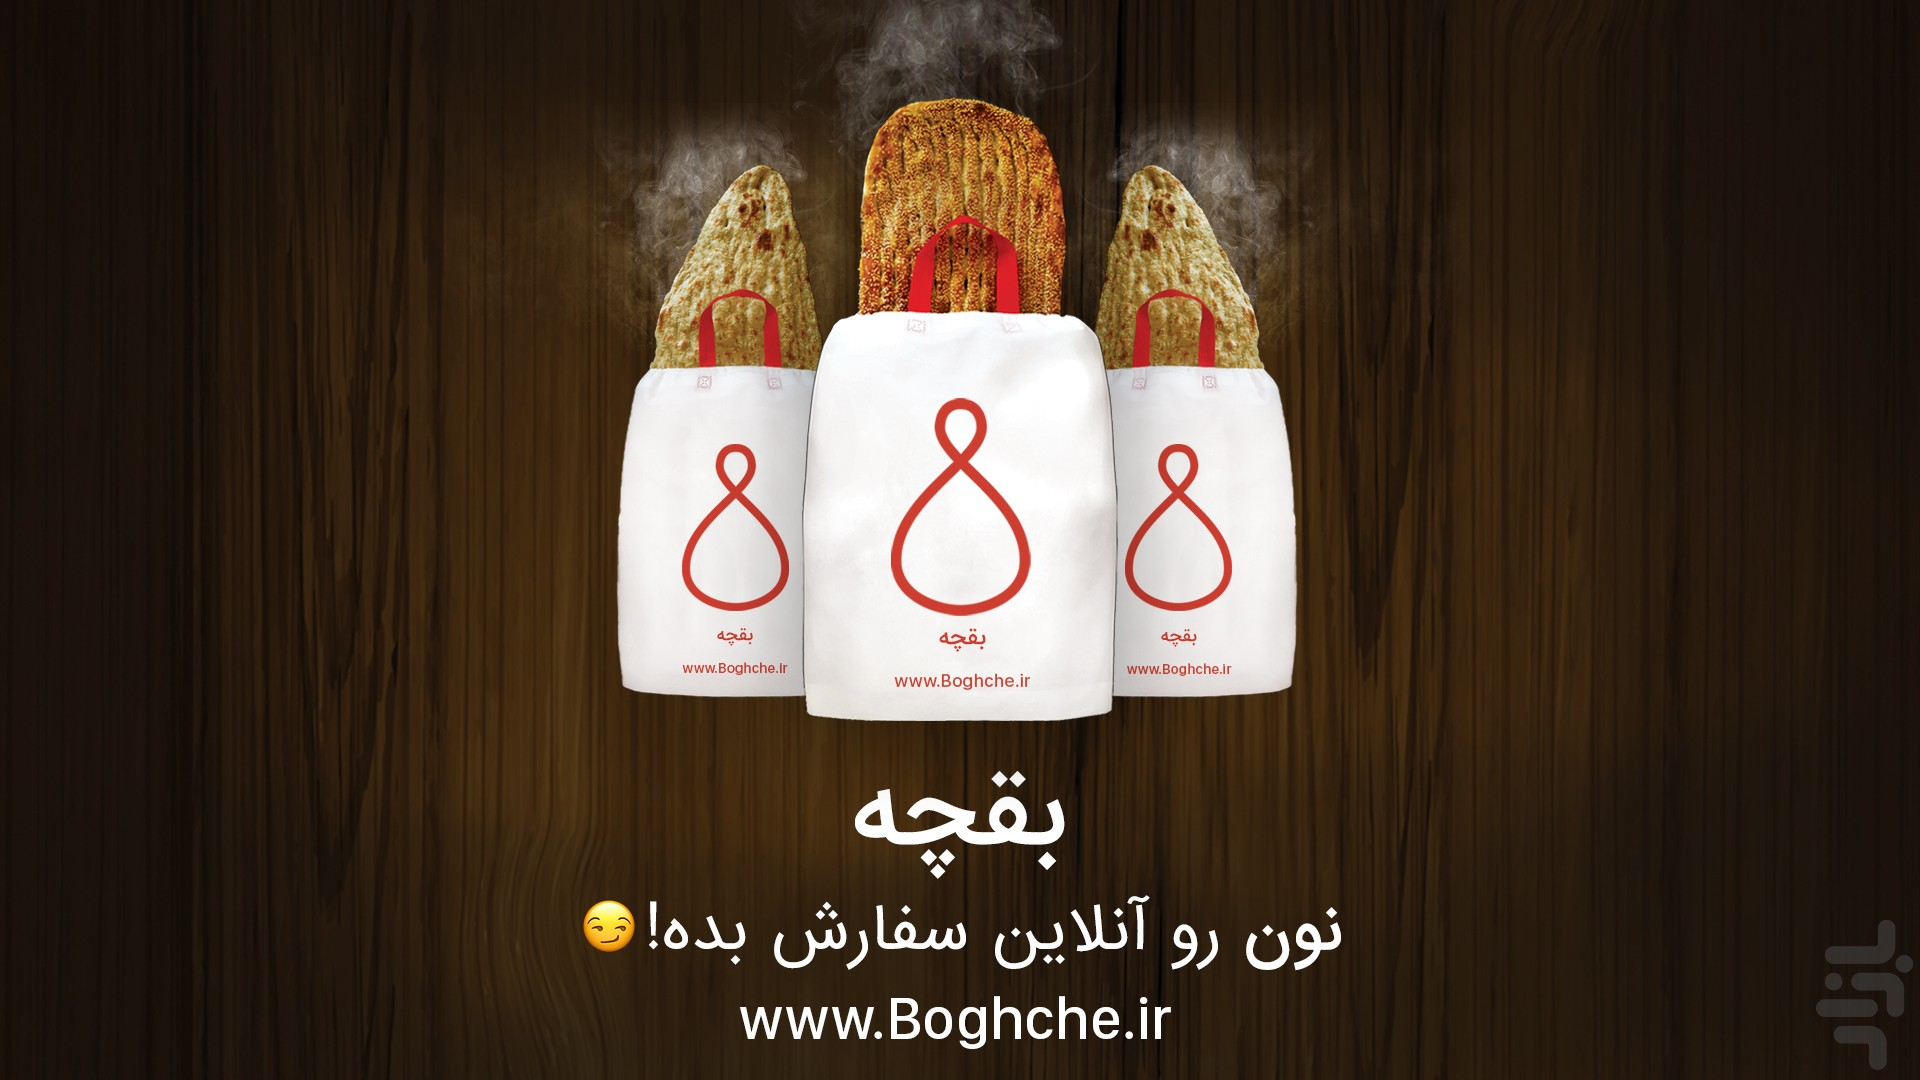 Boghche screenshot